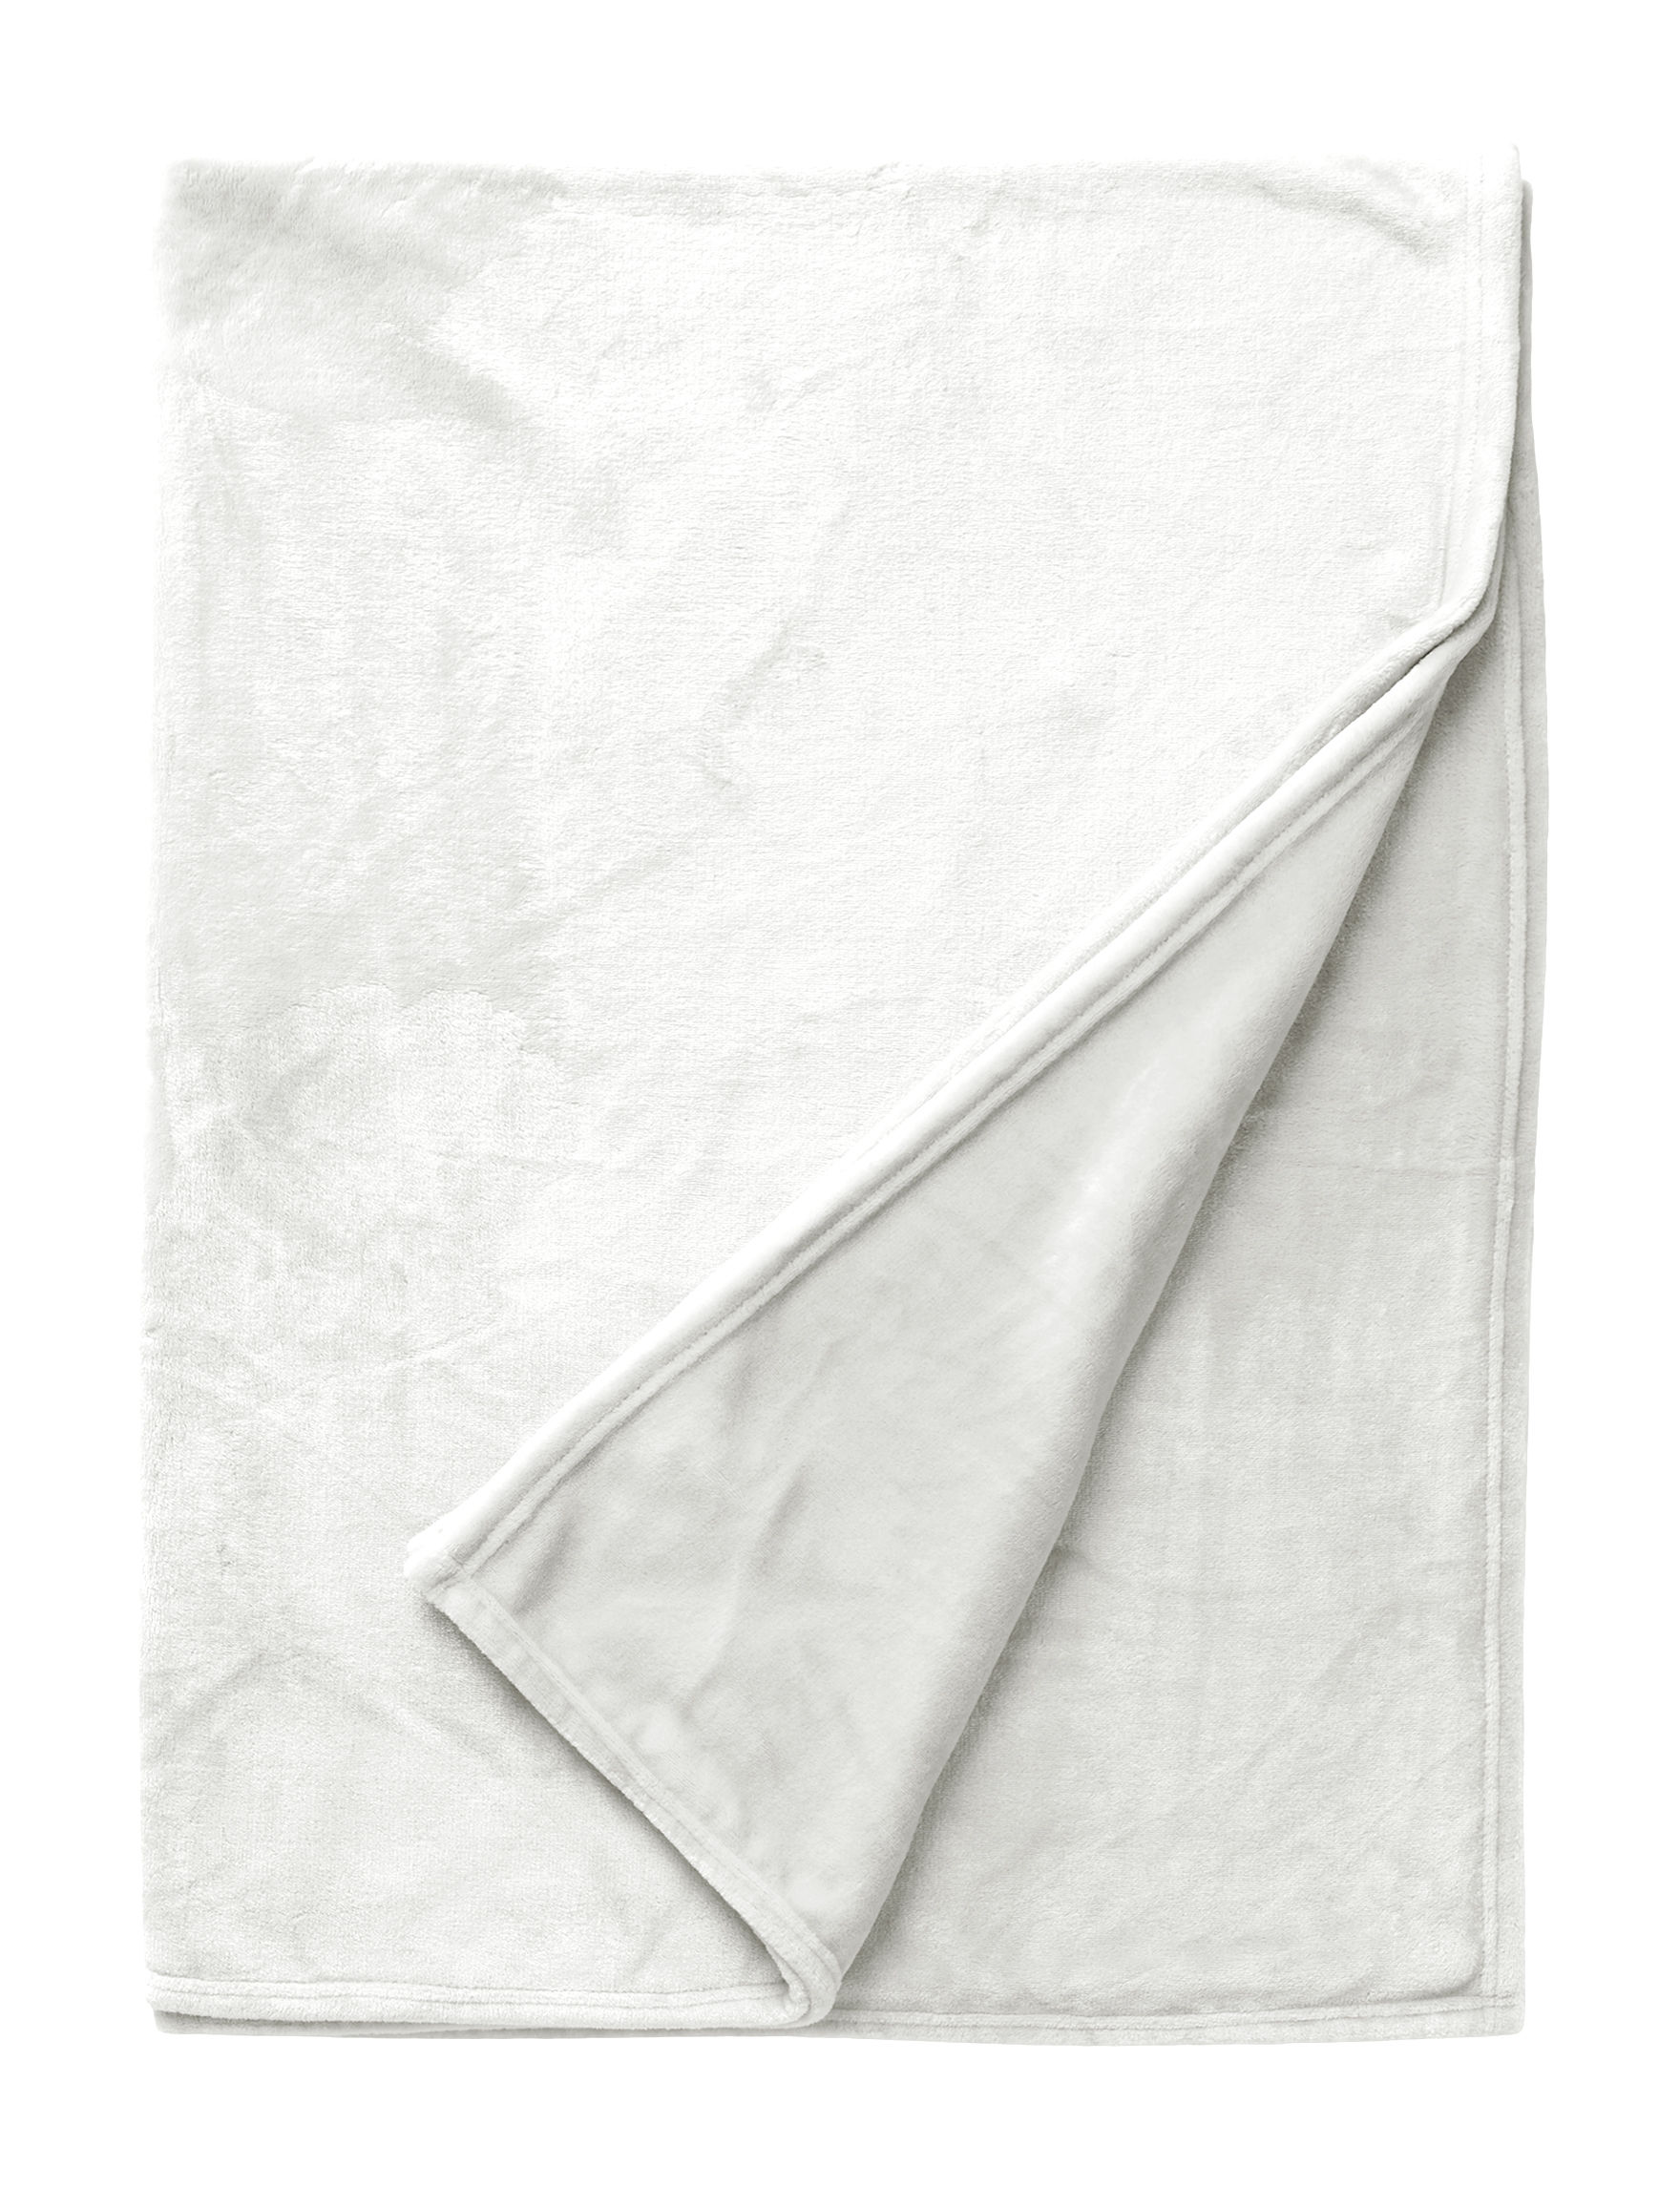 Dream Home NY Ivory Blankets & Throws